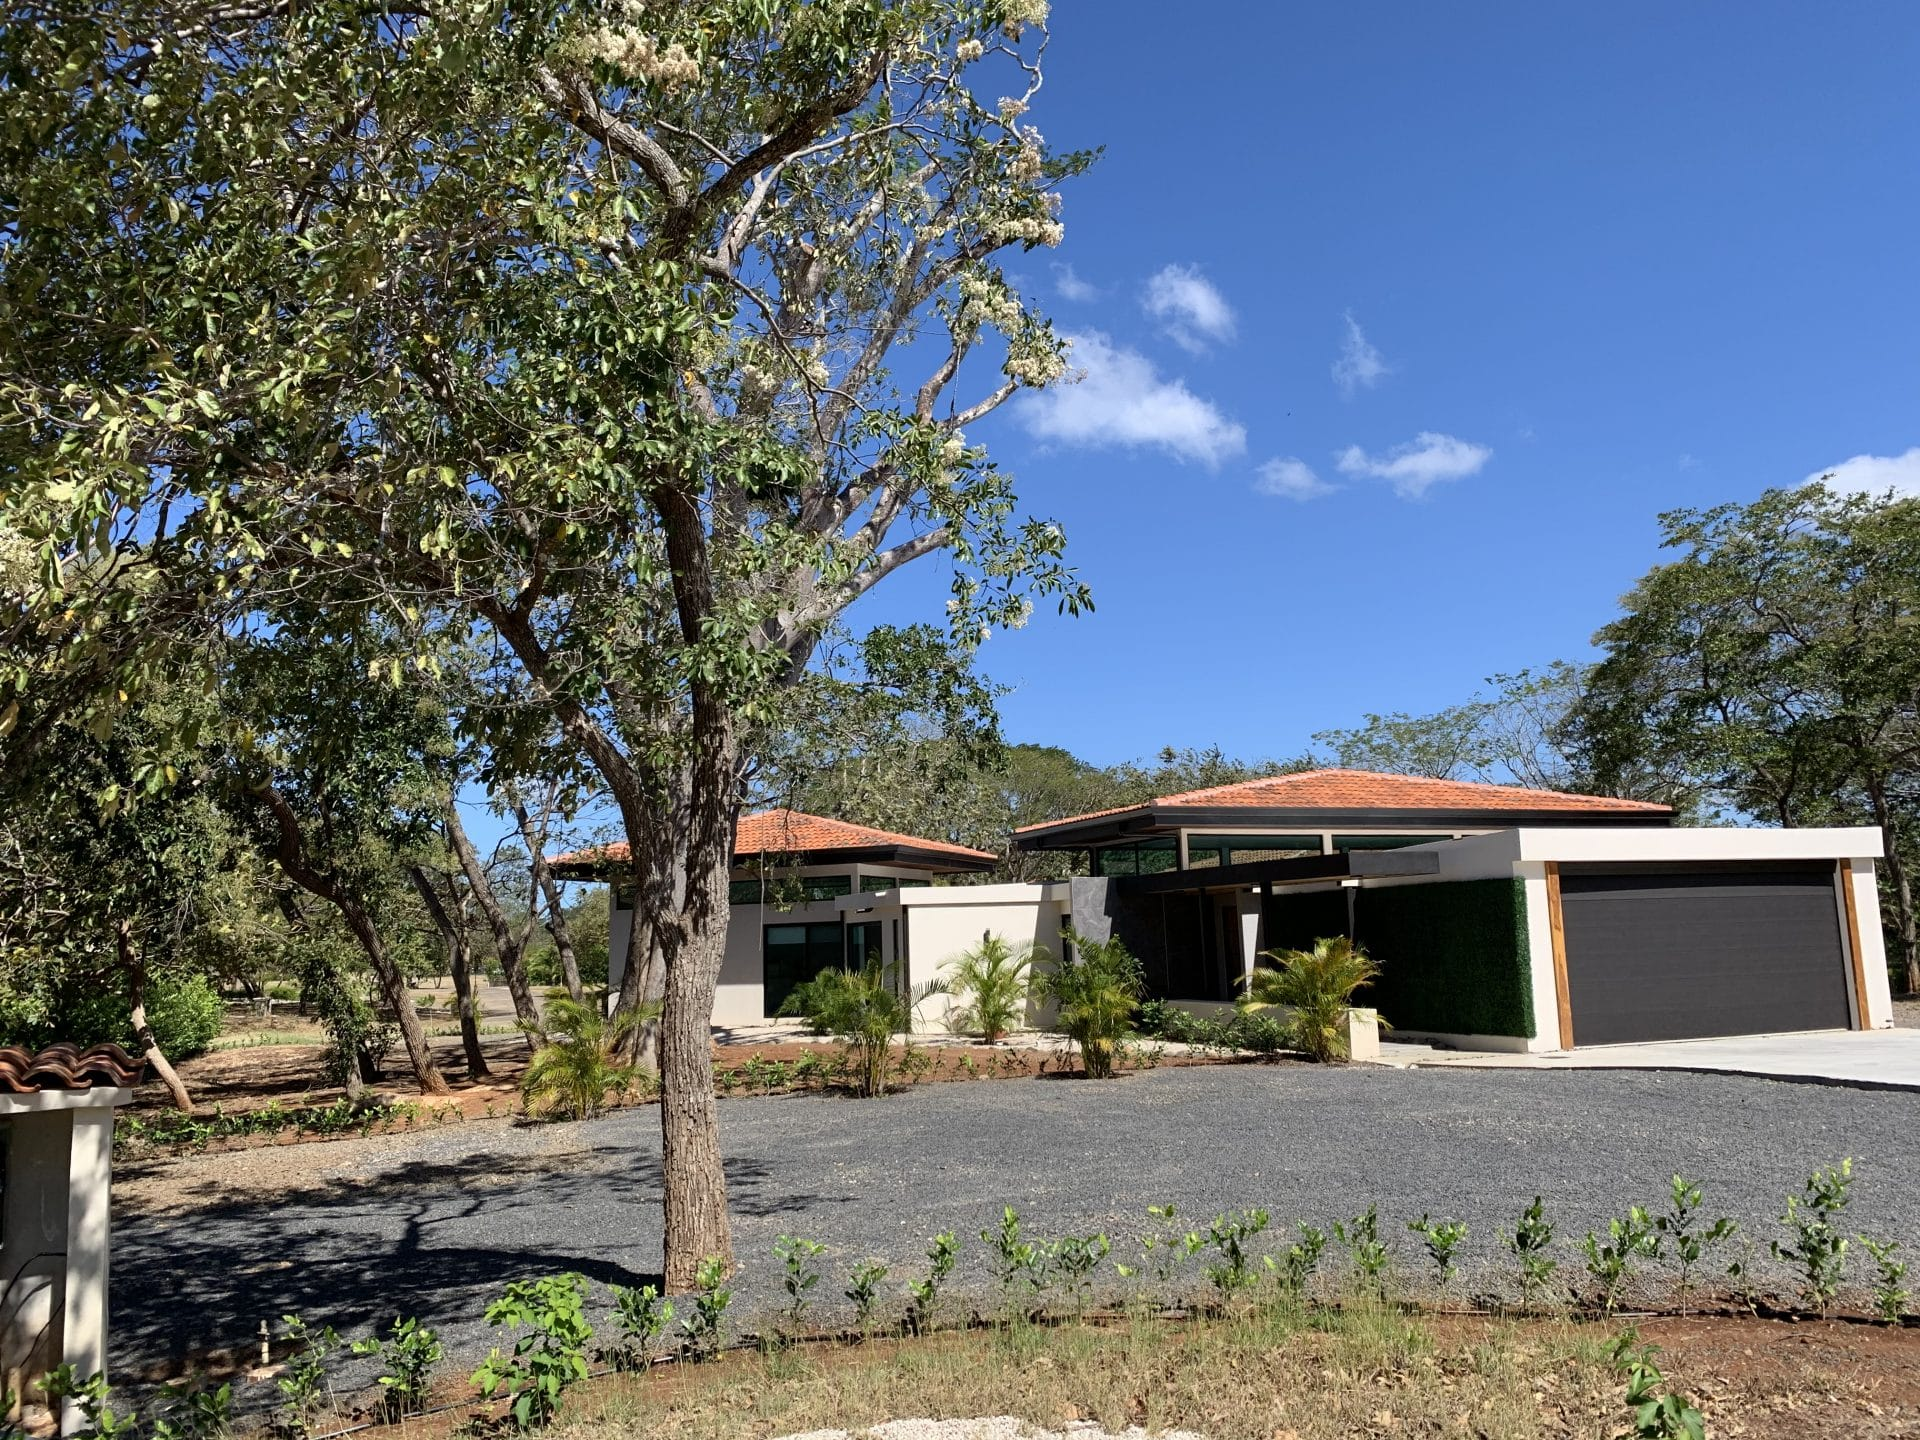 Modern House with 4 bedrooms in renown Hacienda Pinilla - Tamarindo